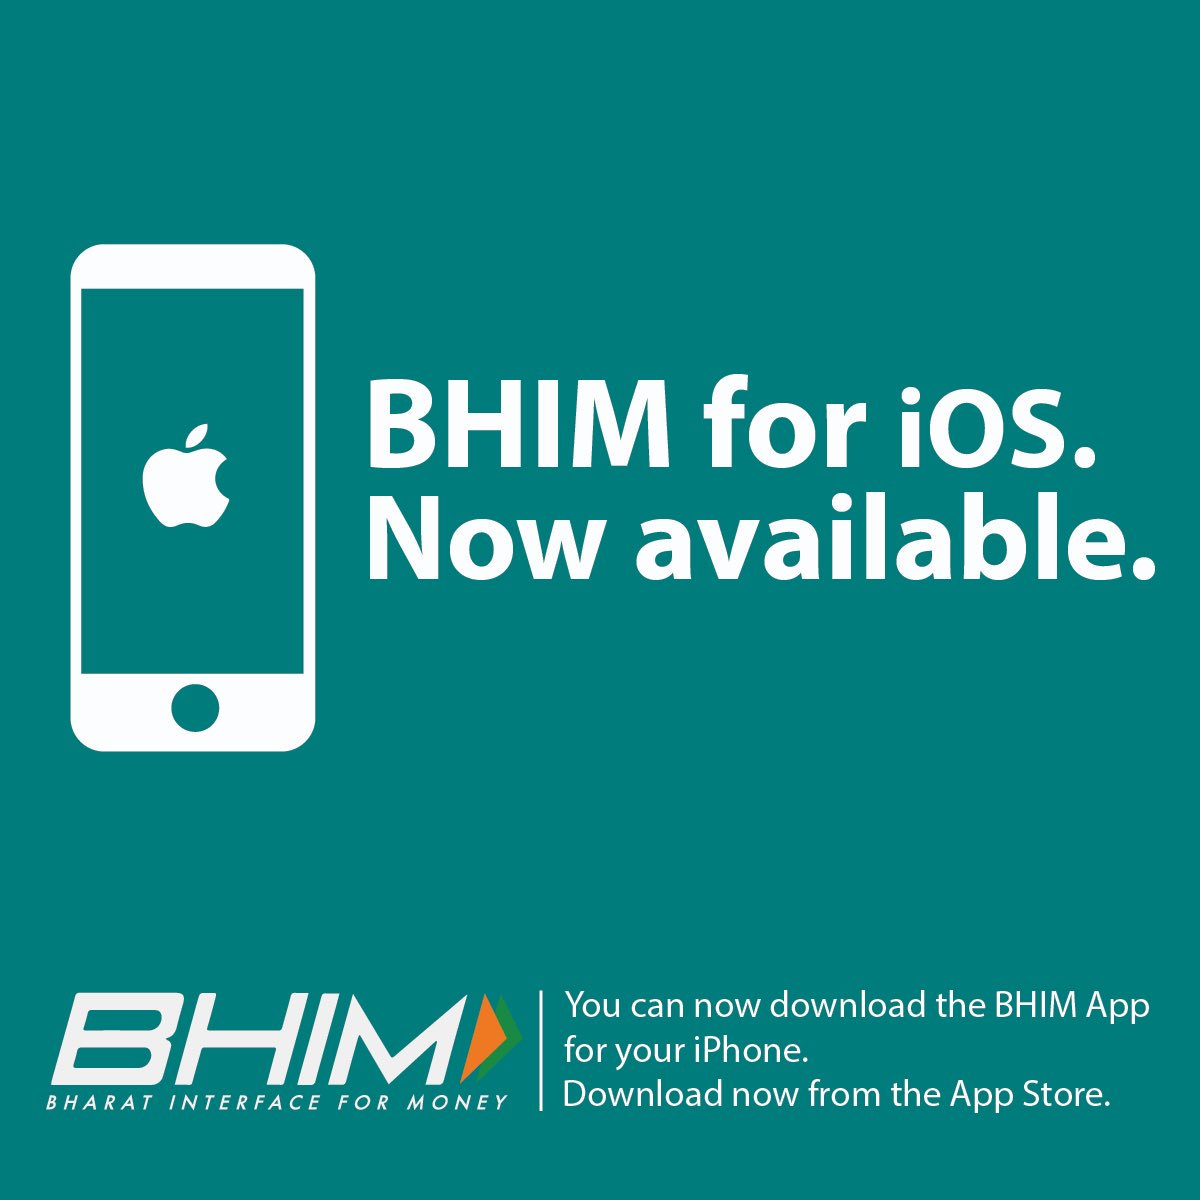 Downloaded the #BHIM App on your #iPhone yet? Use BHIM now &amp; win big digitally!  https:// appsto.re/sg/6T1Ihb.i  &nbsp;     @narendramodi @DS_Khimsar<br>http://pic.twitter.com/Uz6tli5bvJ